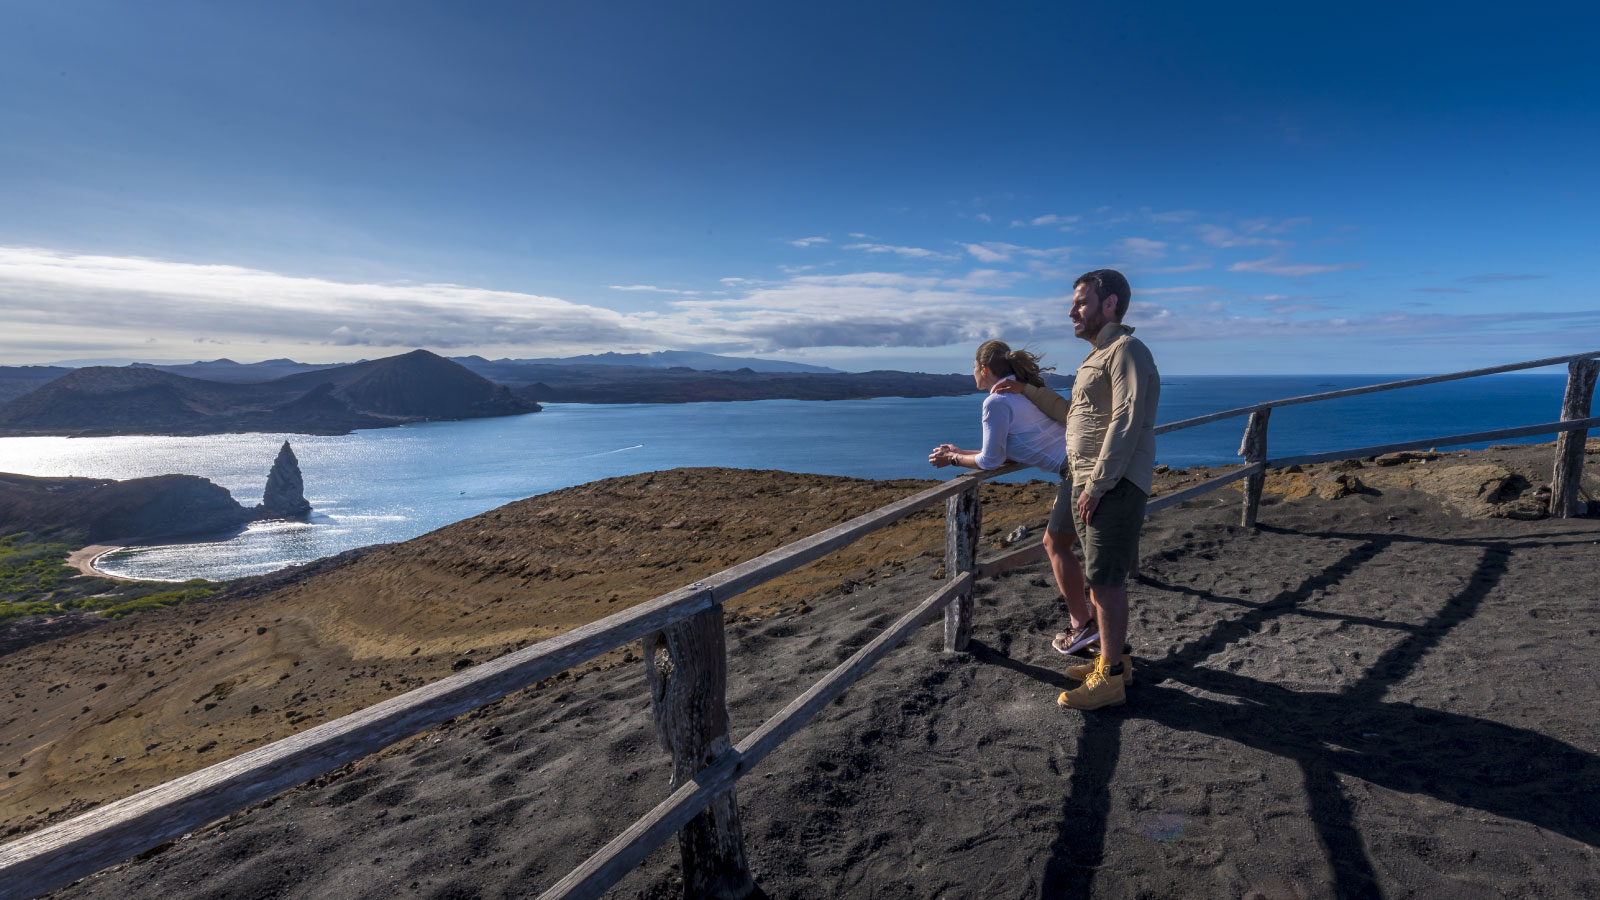 Two couples in Bartolome island enjoying a private vacation in the Galapagos Islands